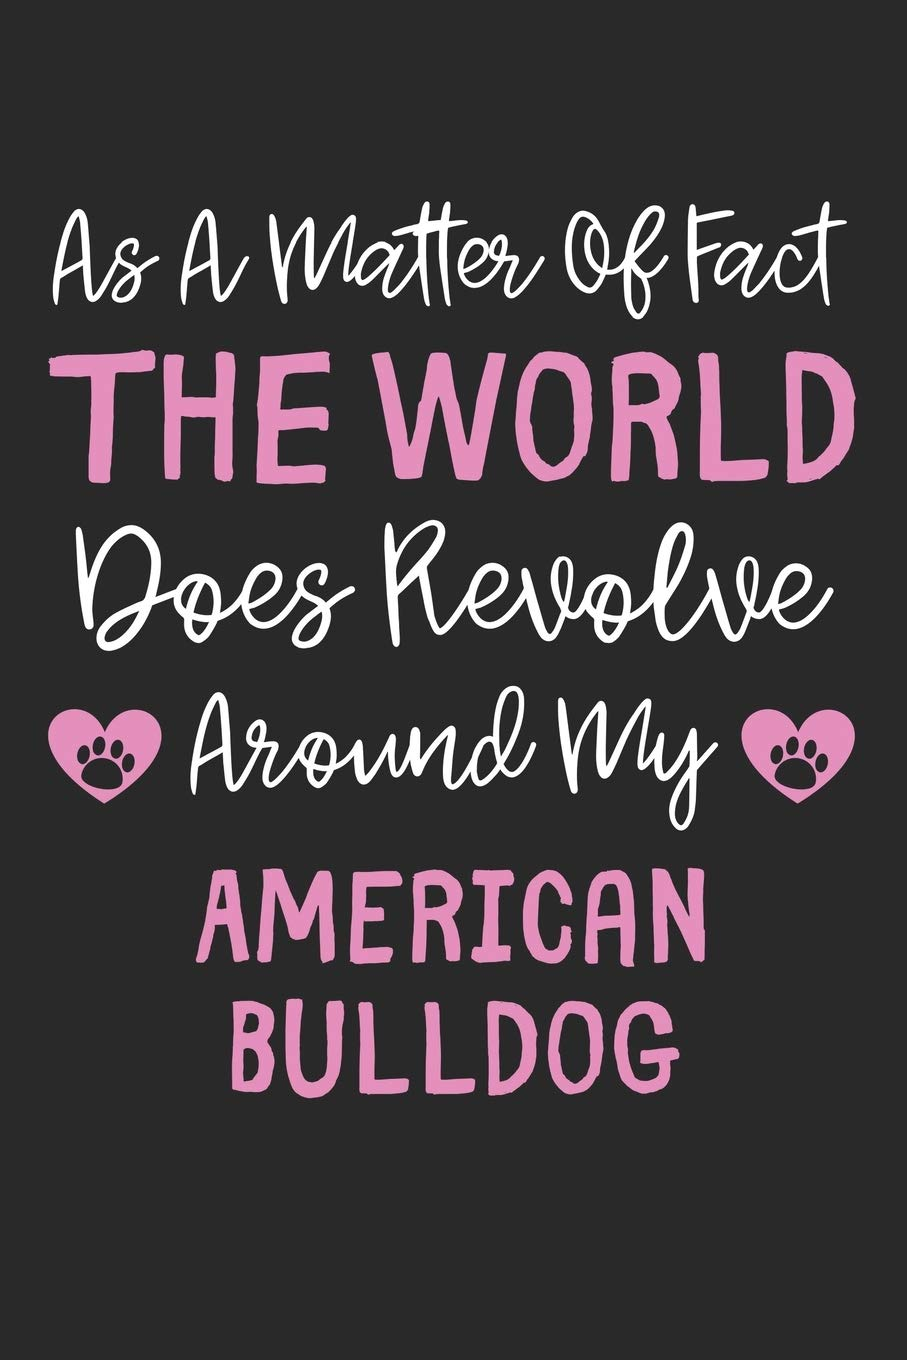 As A Matter Of Fact The World Does Revolve Around My American Bulldog: Lined Journal, 120 Pages, 6 x 9, Funny American Bulldog Gift Idea, Black Matte … Revolve Around My American Bulldog Journal)